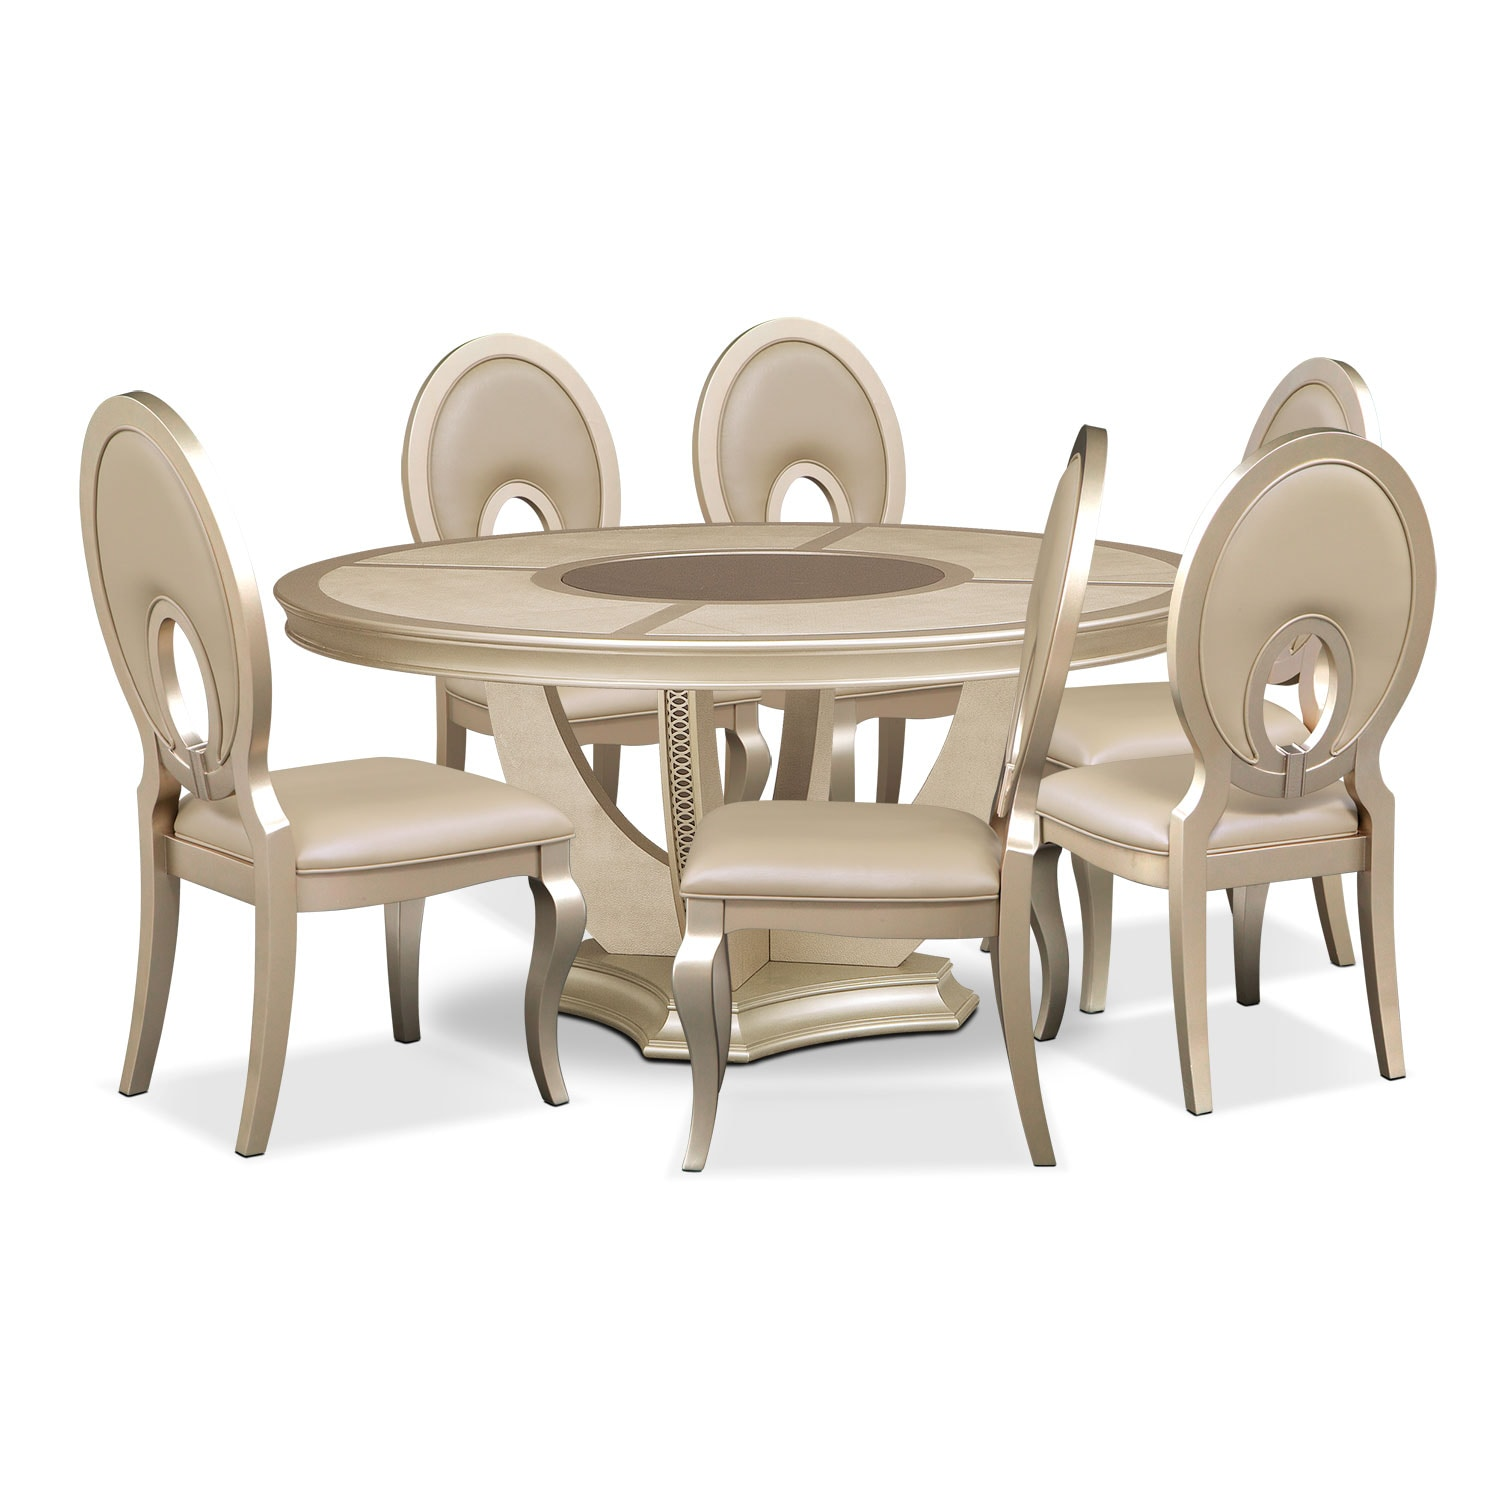 Round Table And Chairs For 6: Allegro Round Table And 6 Chairs - Platinum